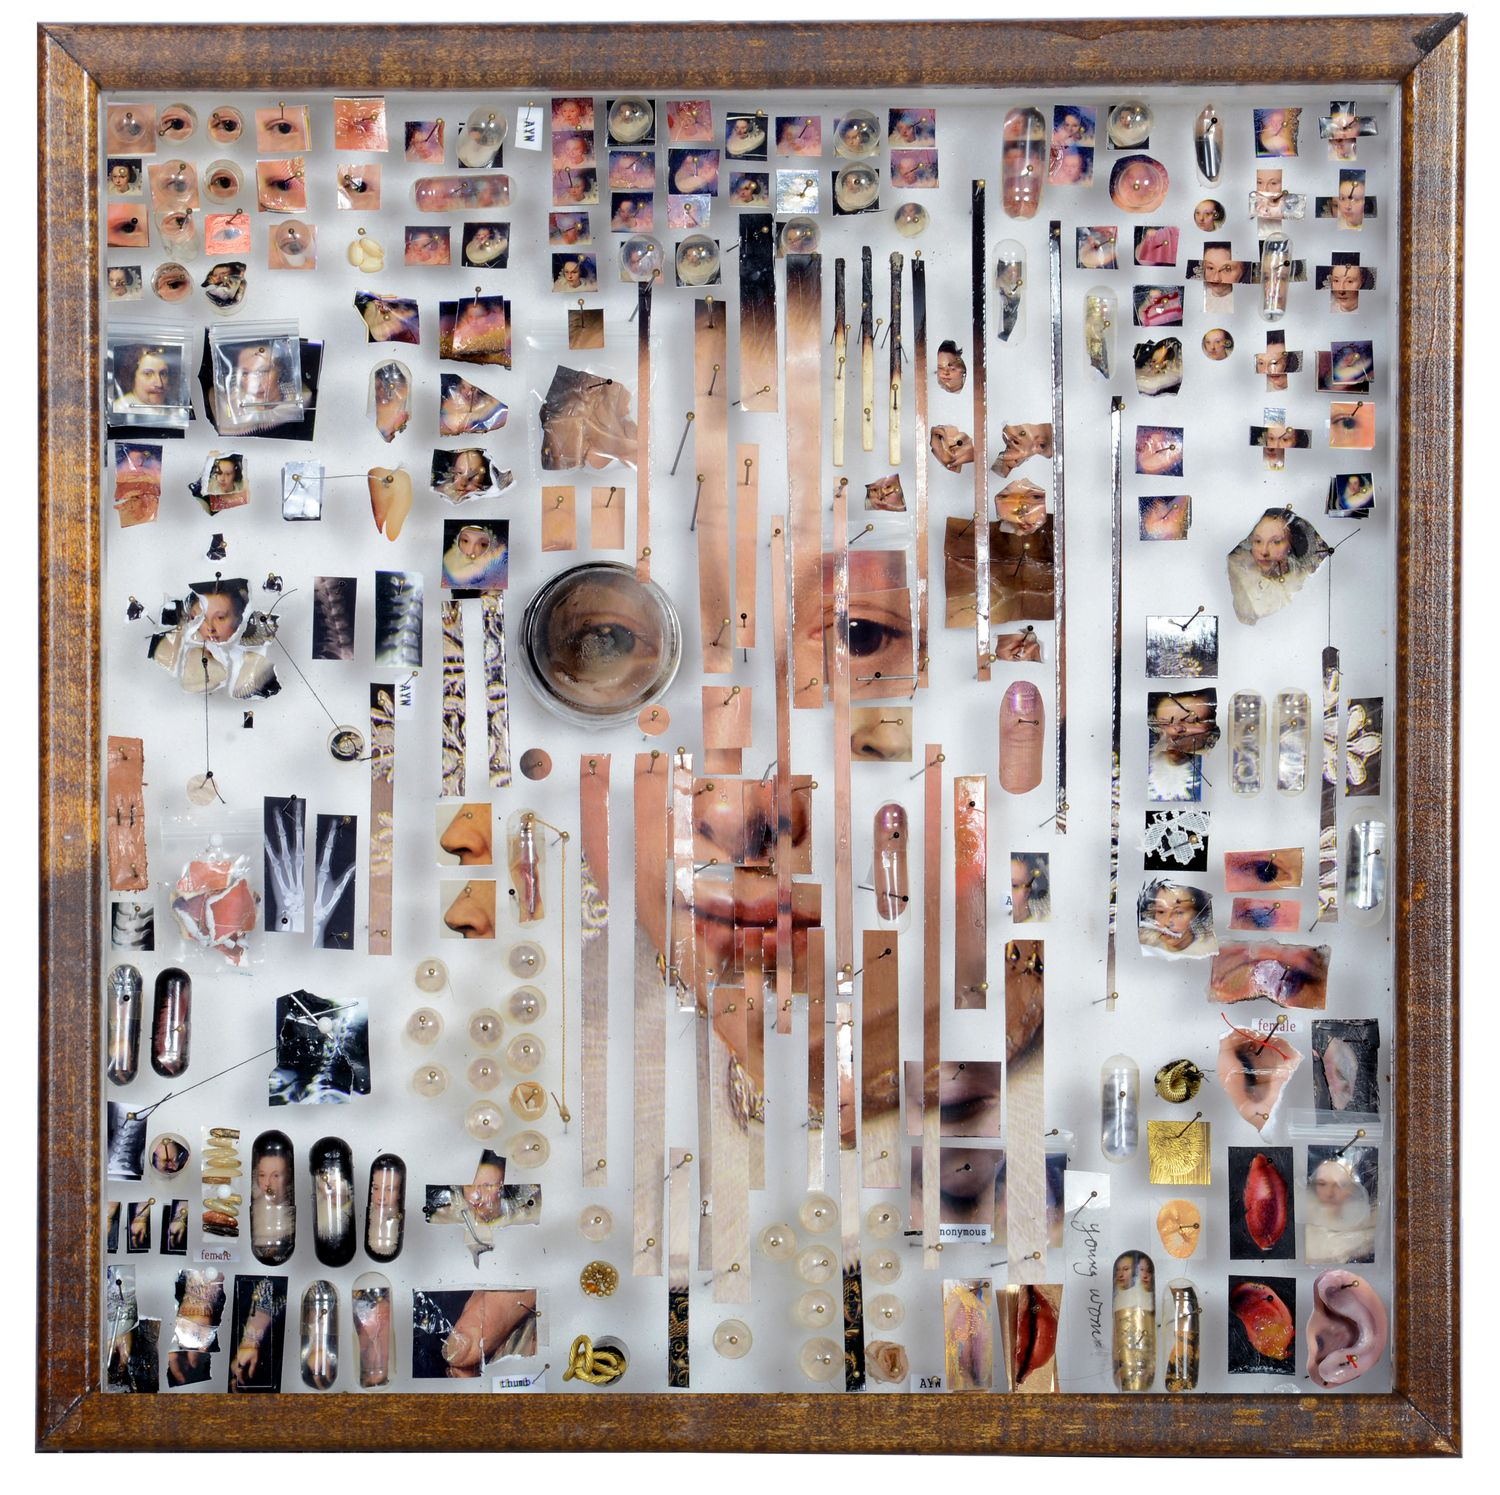 Case No. AYW  This piece of work is created by collecting different people's eyes and noses and other body parts, then categorizing them on the sides. And then putting together or creating a person's face in the middle of the work.